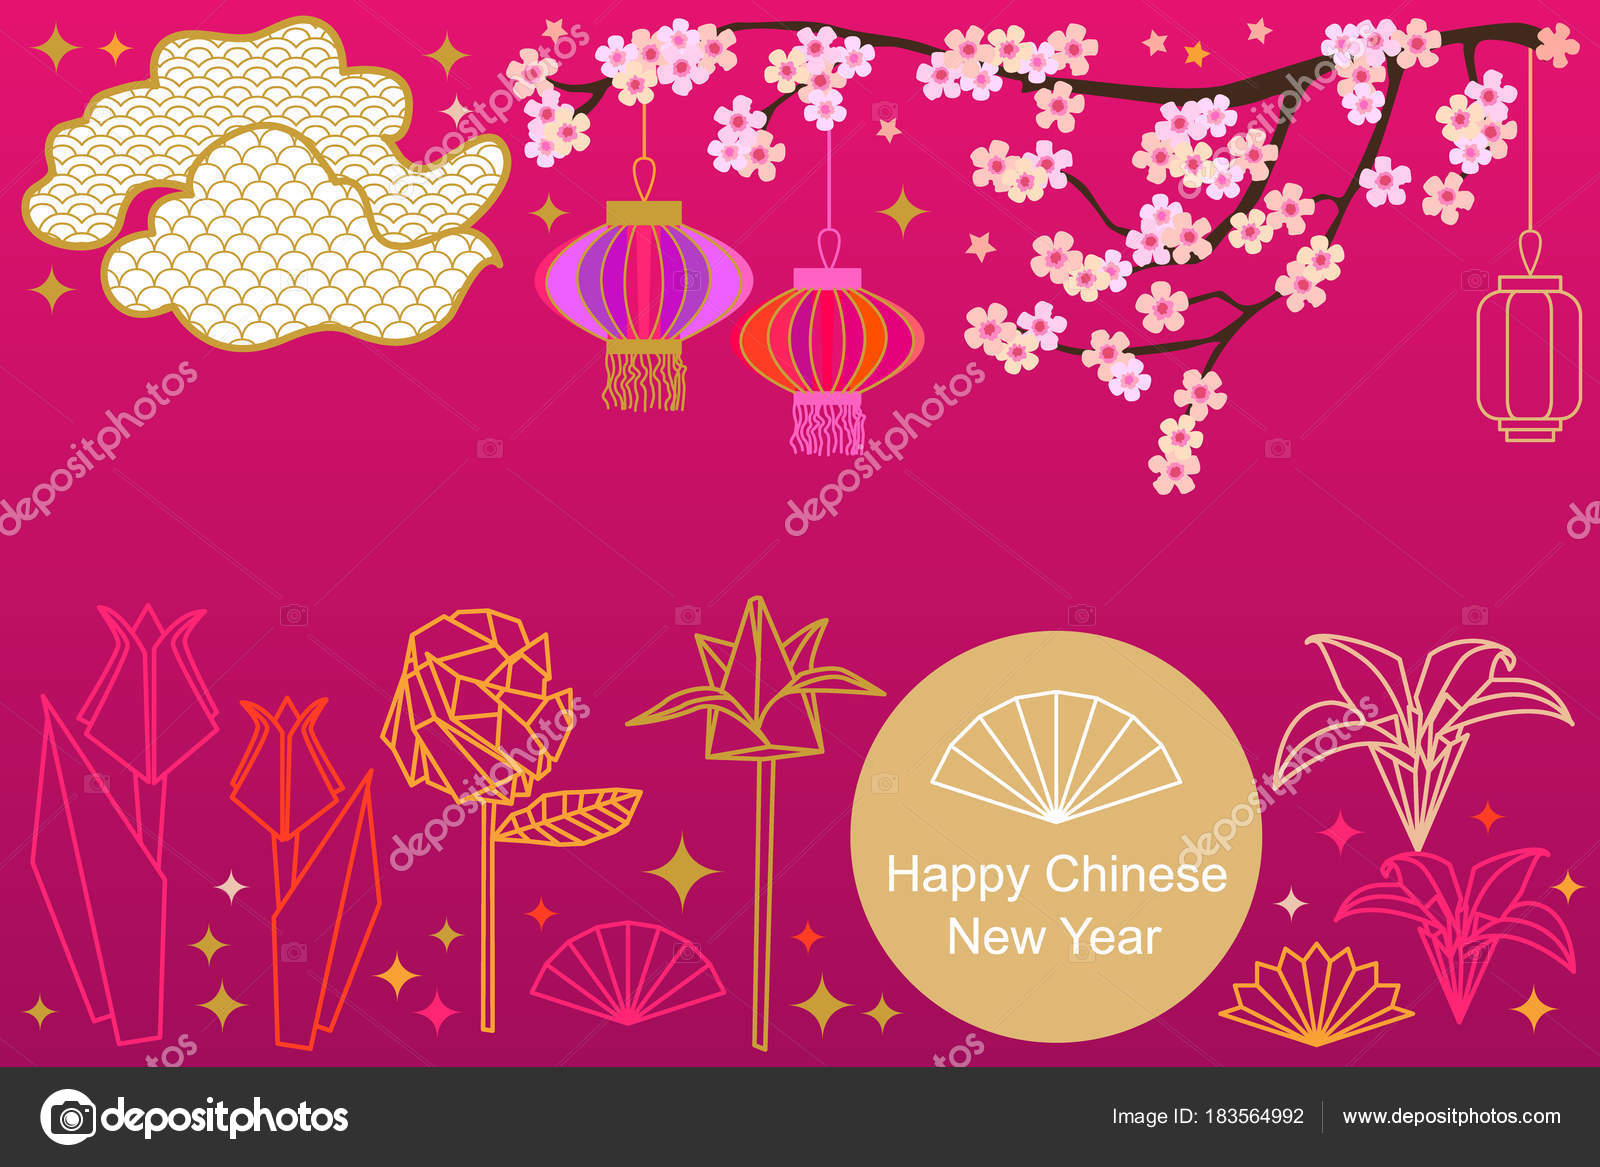 Happy Chinese New Year Card Colorful Abstract Ornate Circles Clouds Origami Flowers And